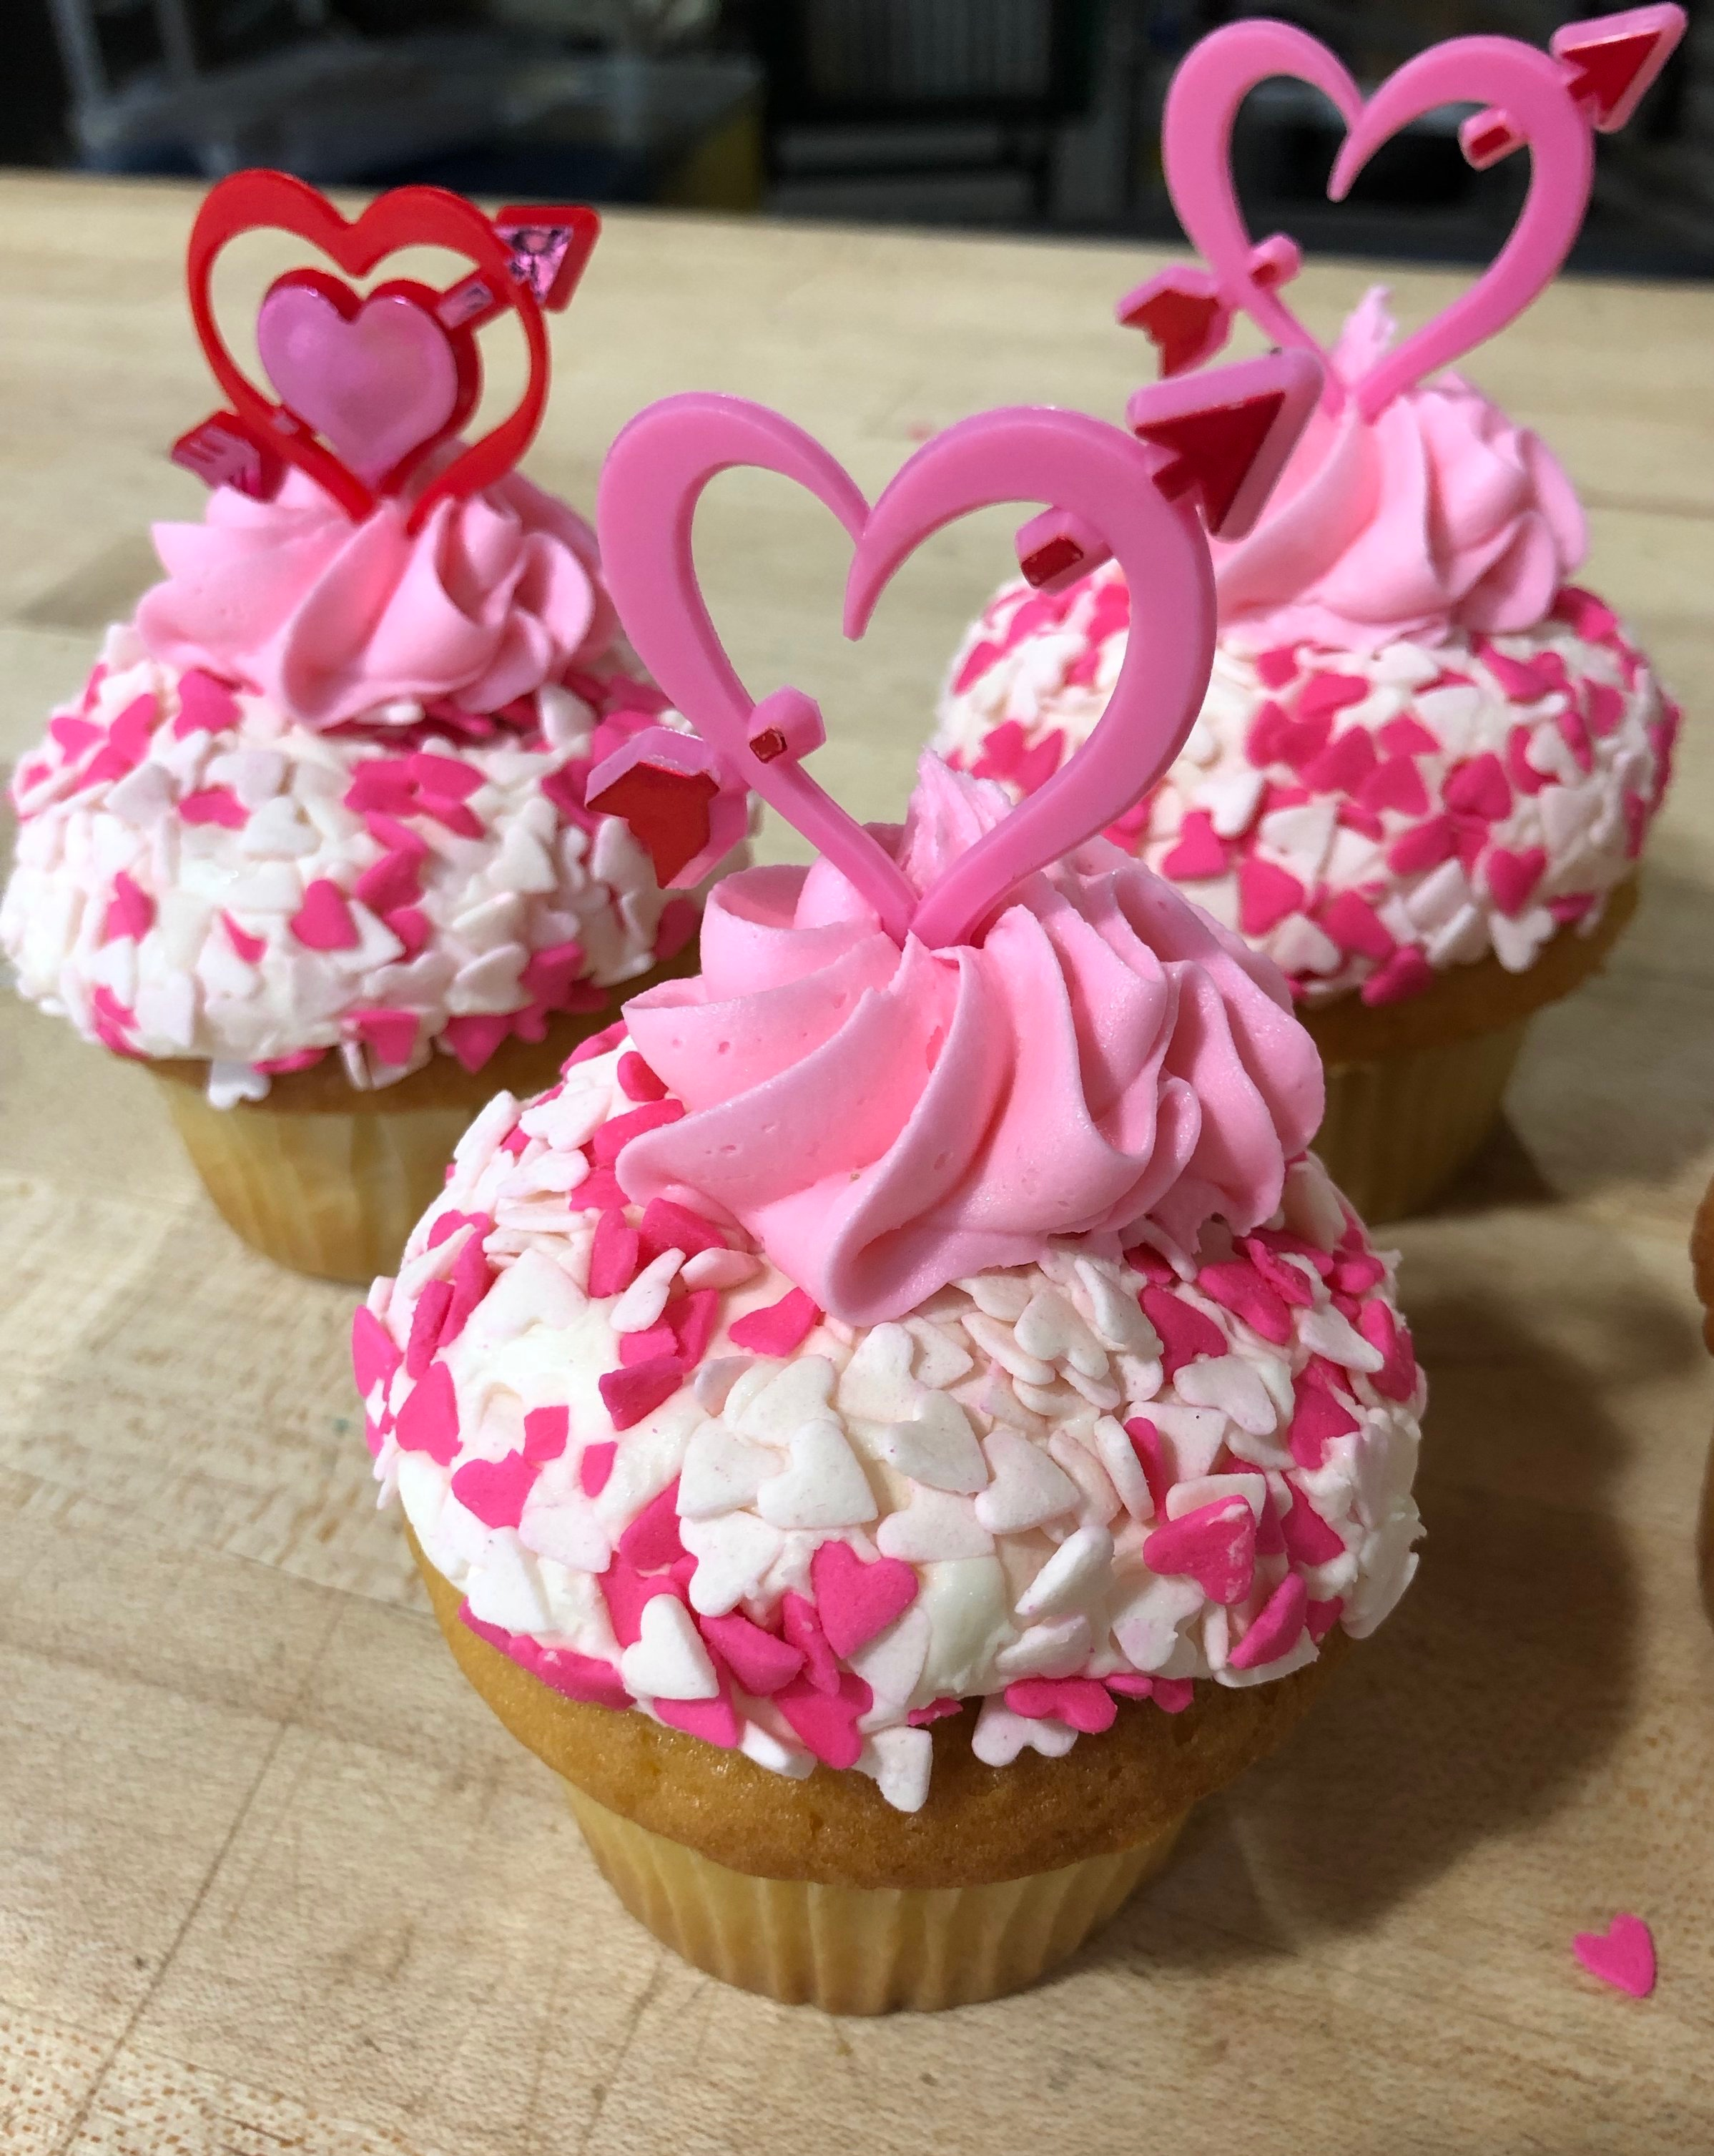 """Valentine's Day cupcakes are delicious and a sweet way to say """"I love you"""" (or at least """"I like you"""")"""